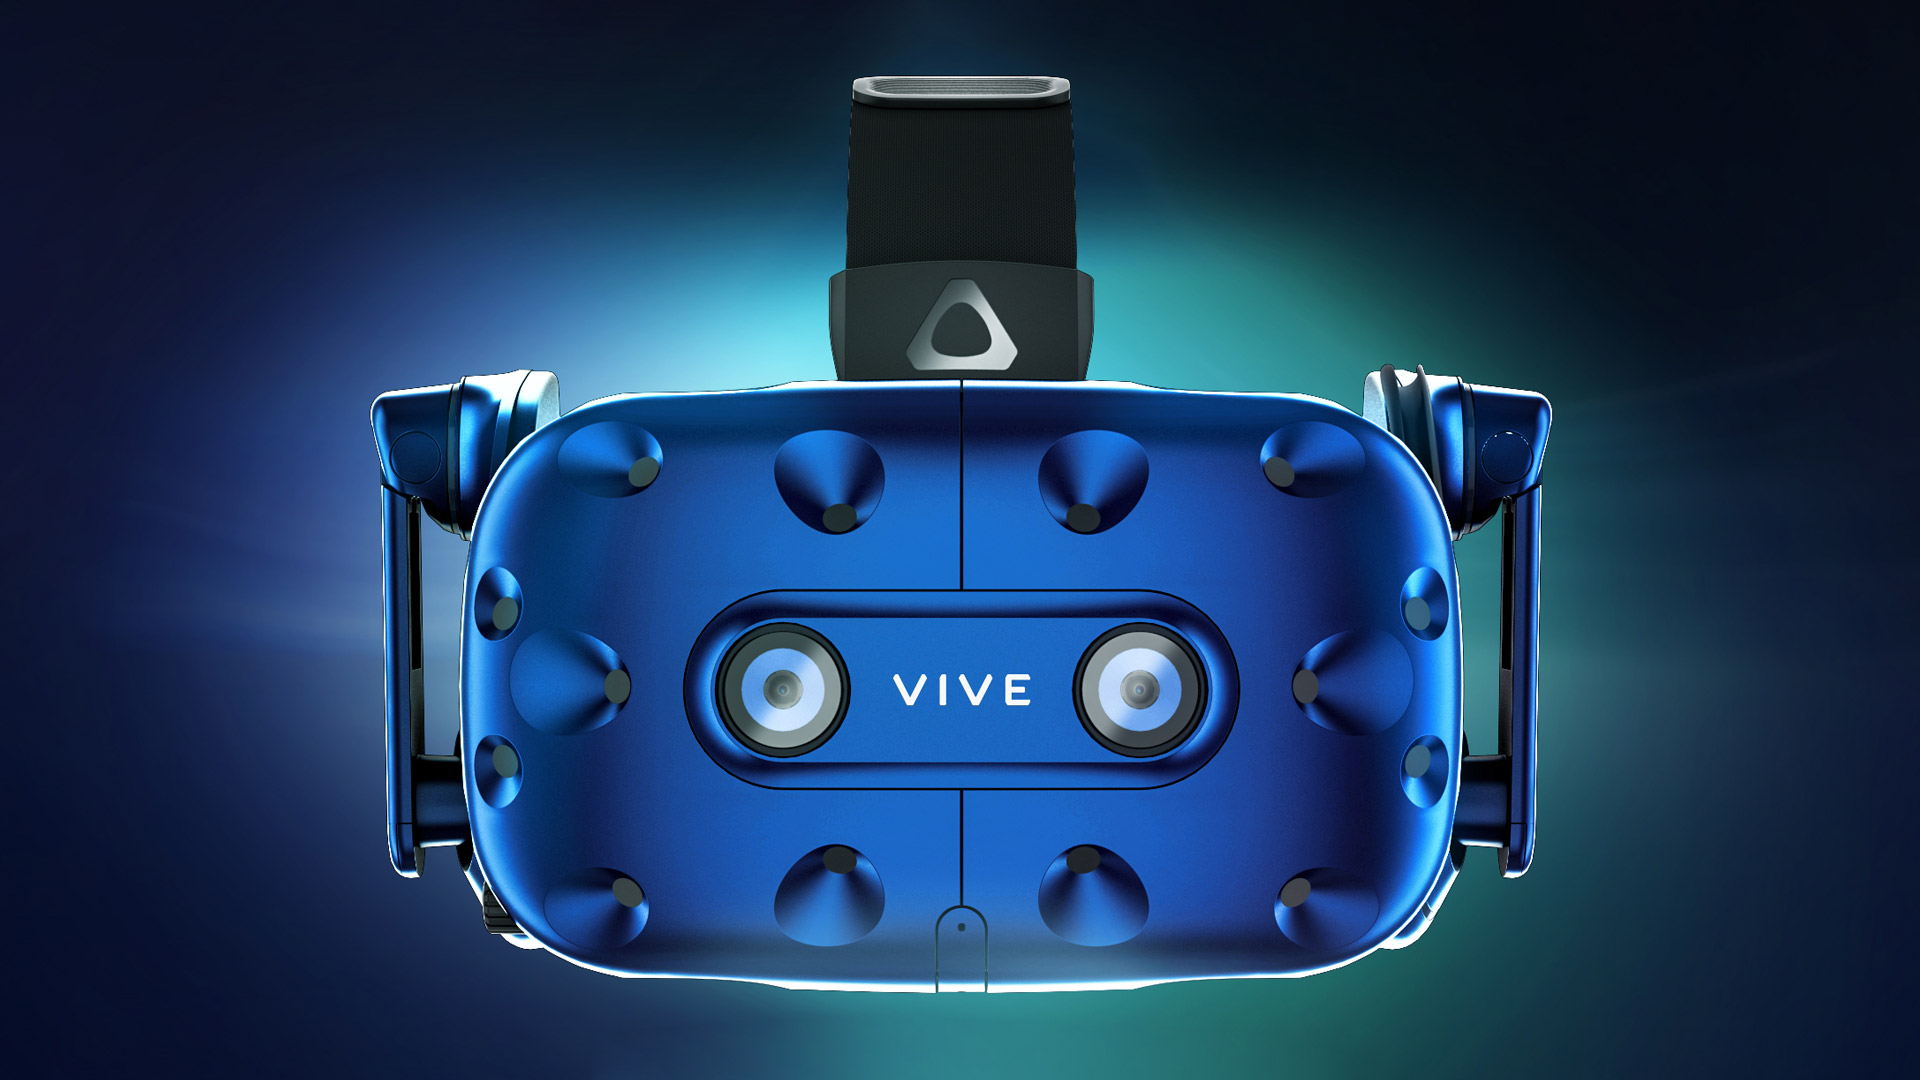 GDC 2018: Vive Pro Headset Priced at $800 for April 5th